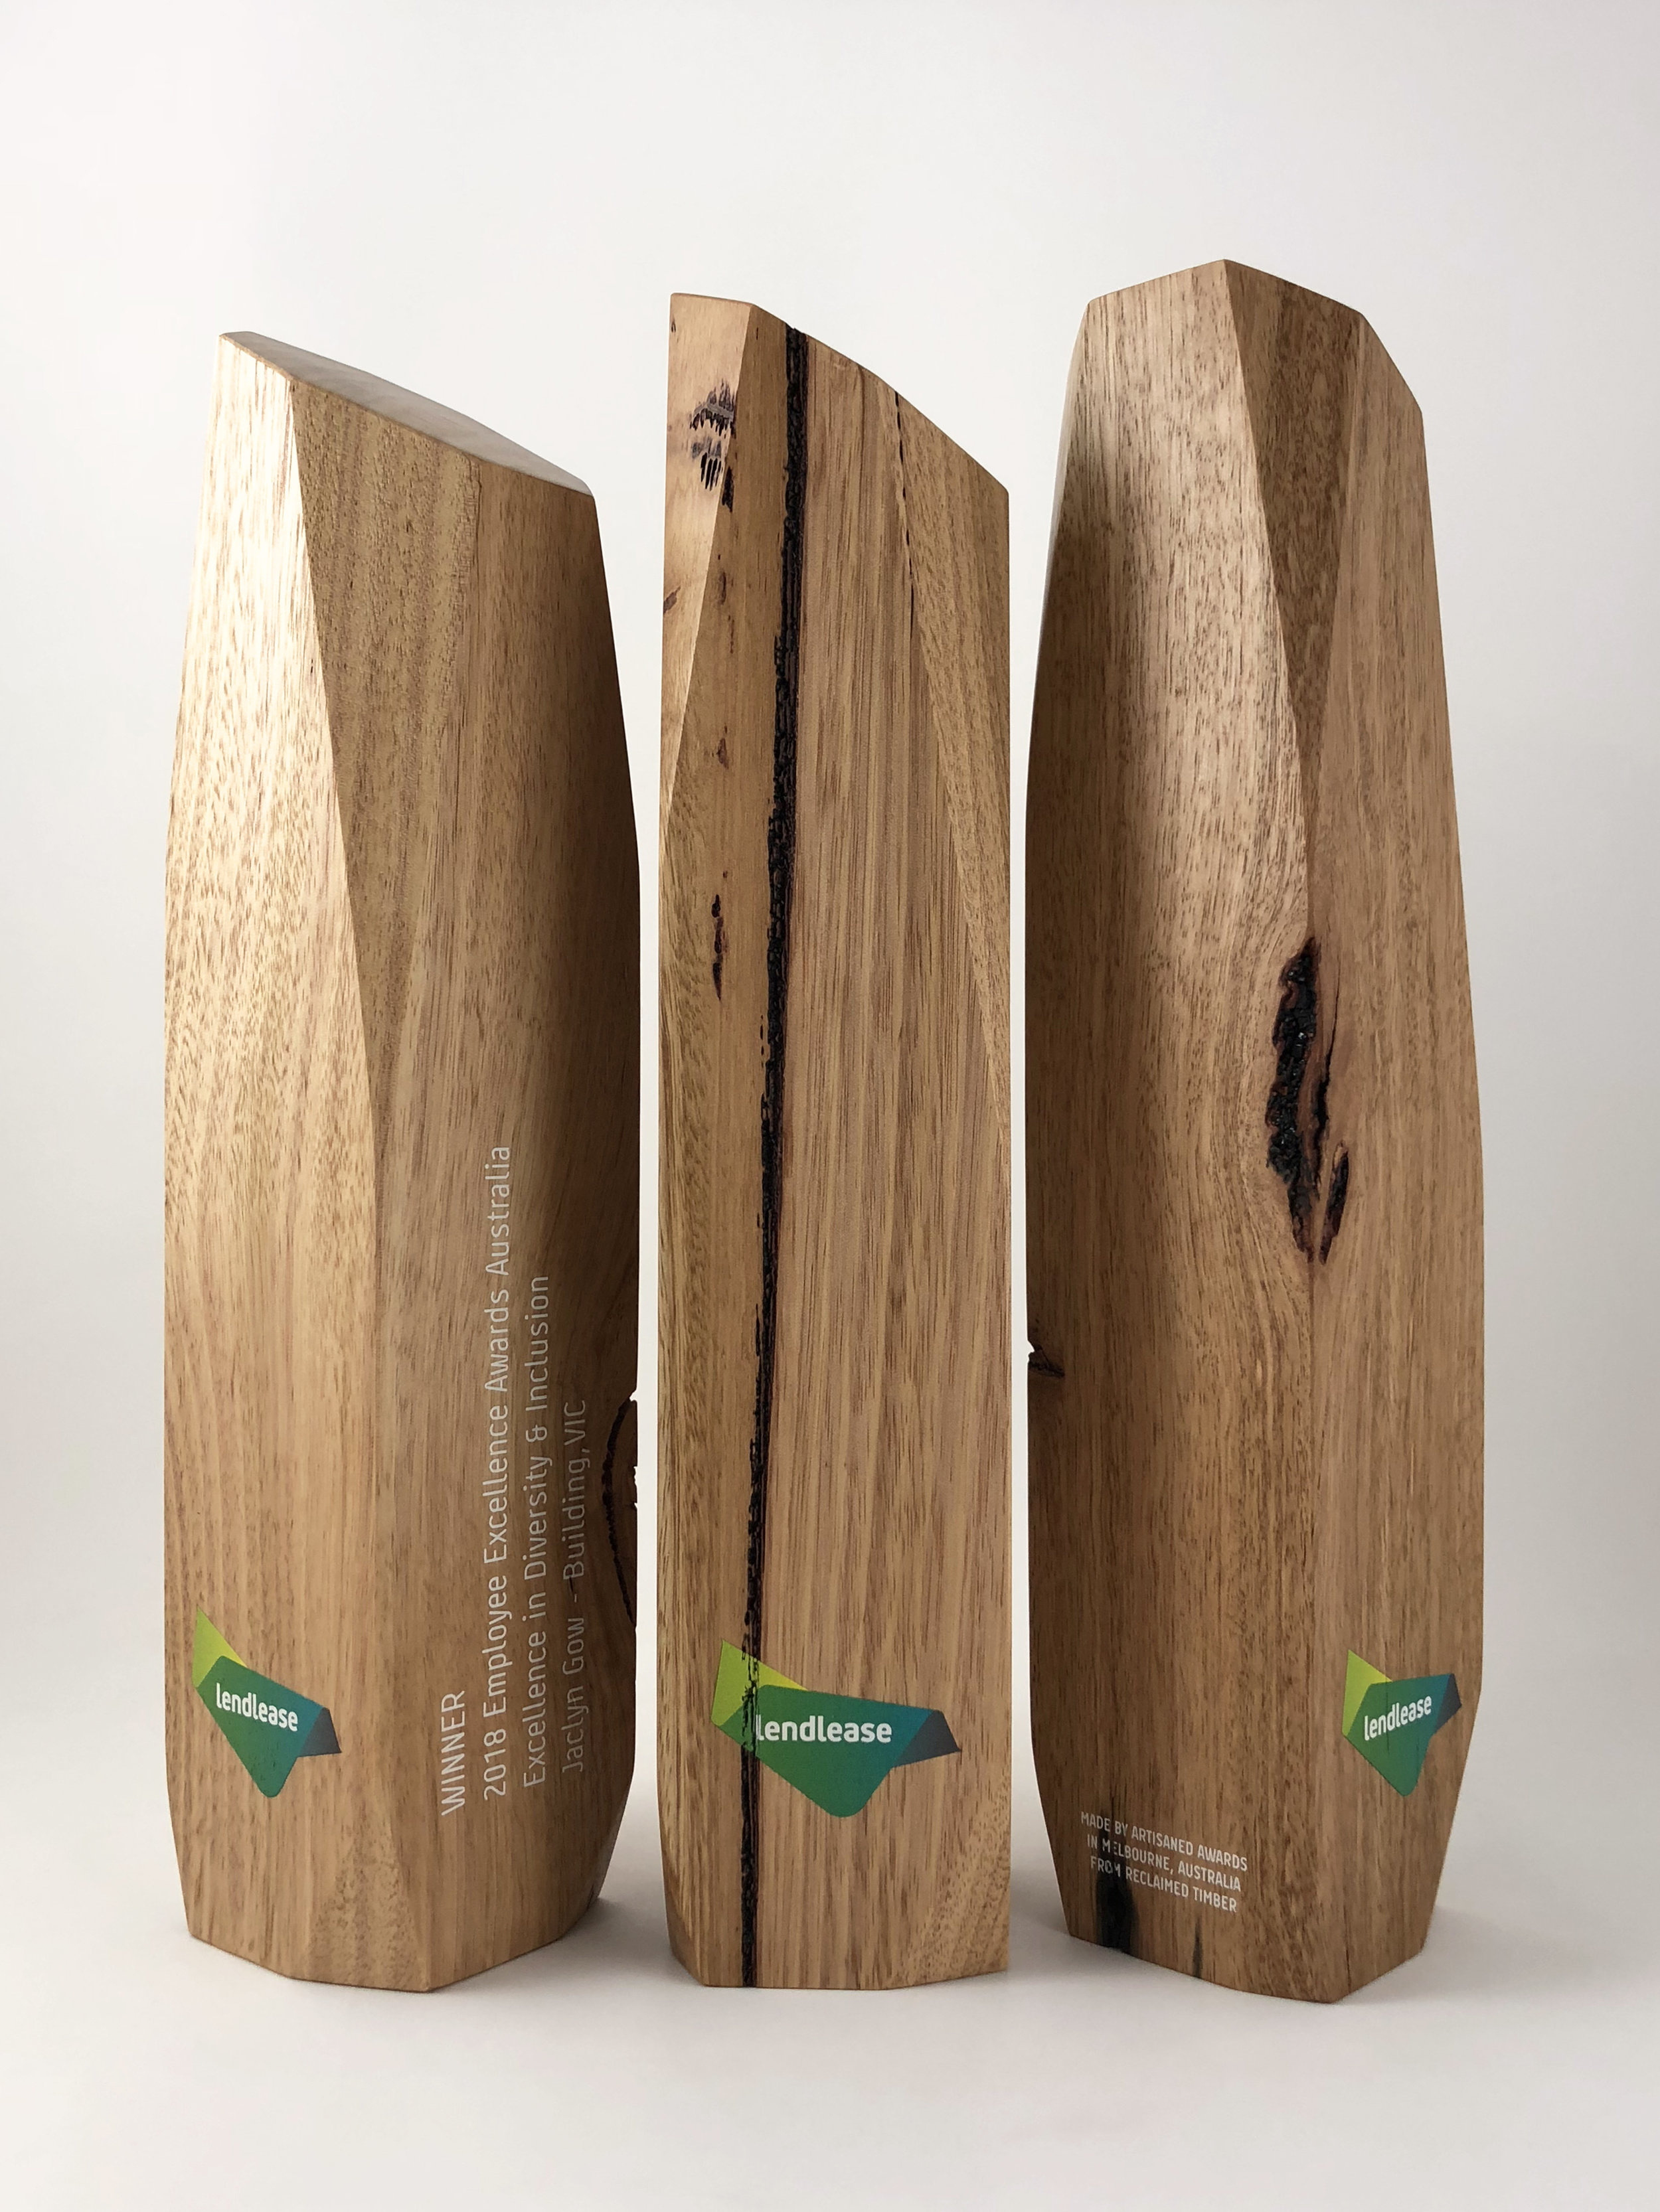 lendlease-reclaimed-timber-awards-trophy-05.jpg